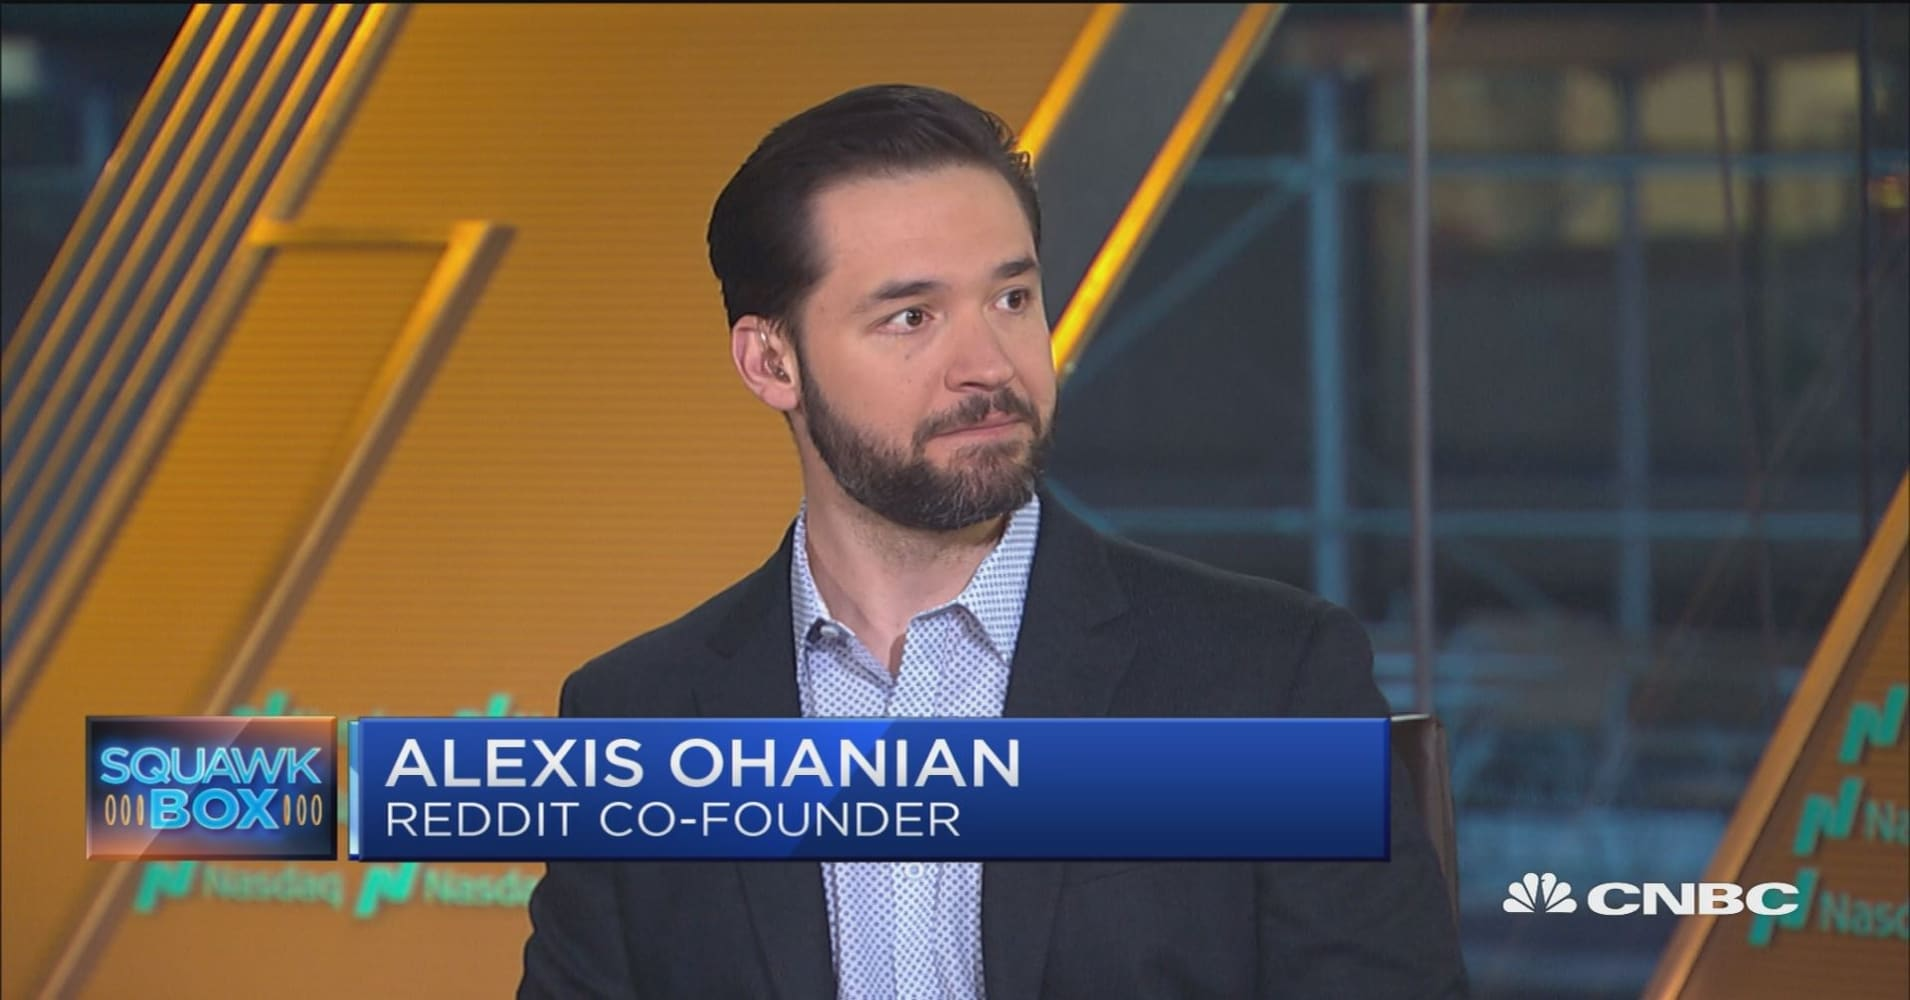 Reddit's co-founder Alexis Ohanian weighs in on the future of data privacy